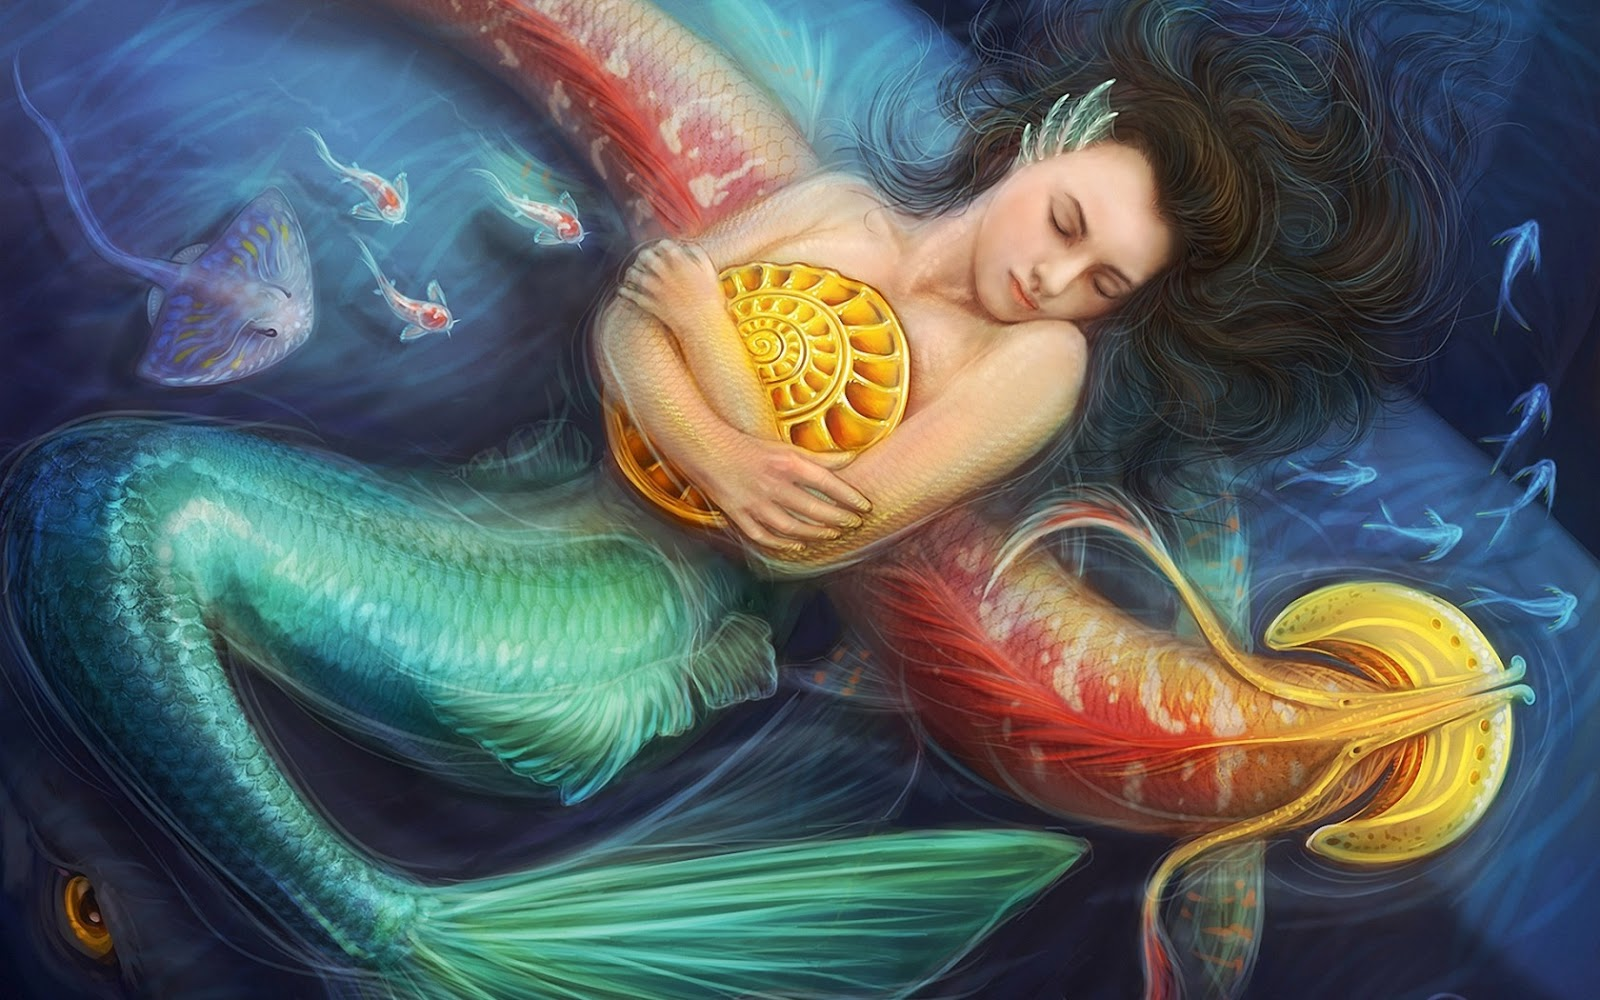 Beautiful Mermaid Girl Paintings Wallpaper Free Download